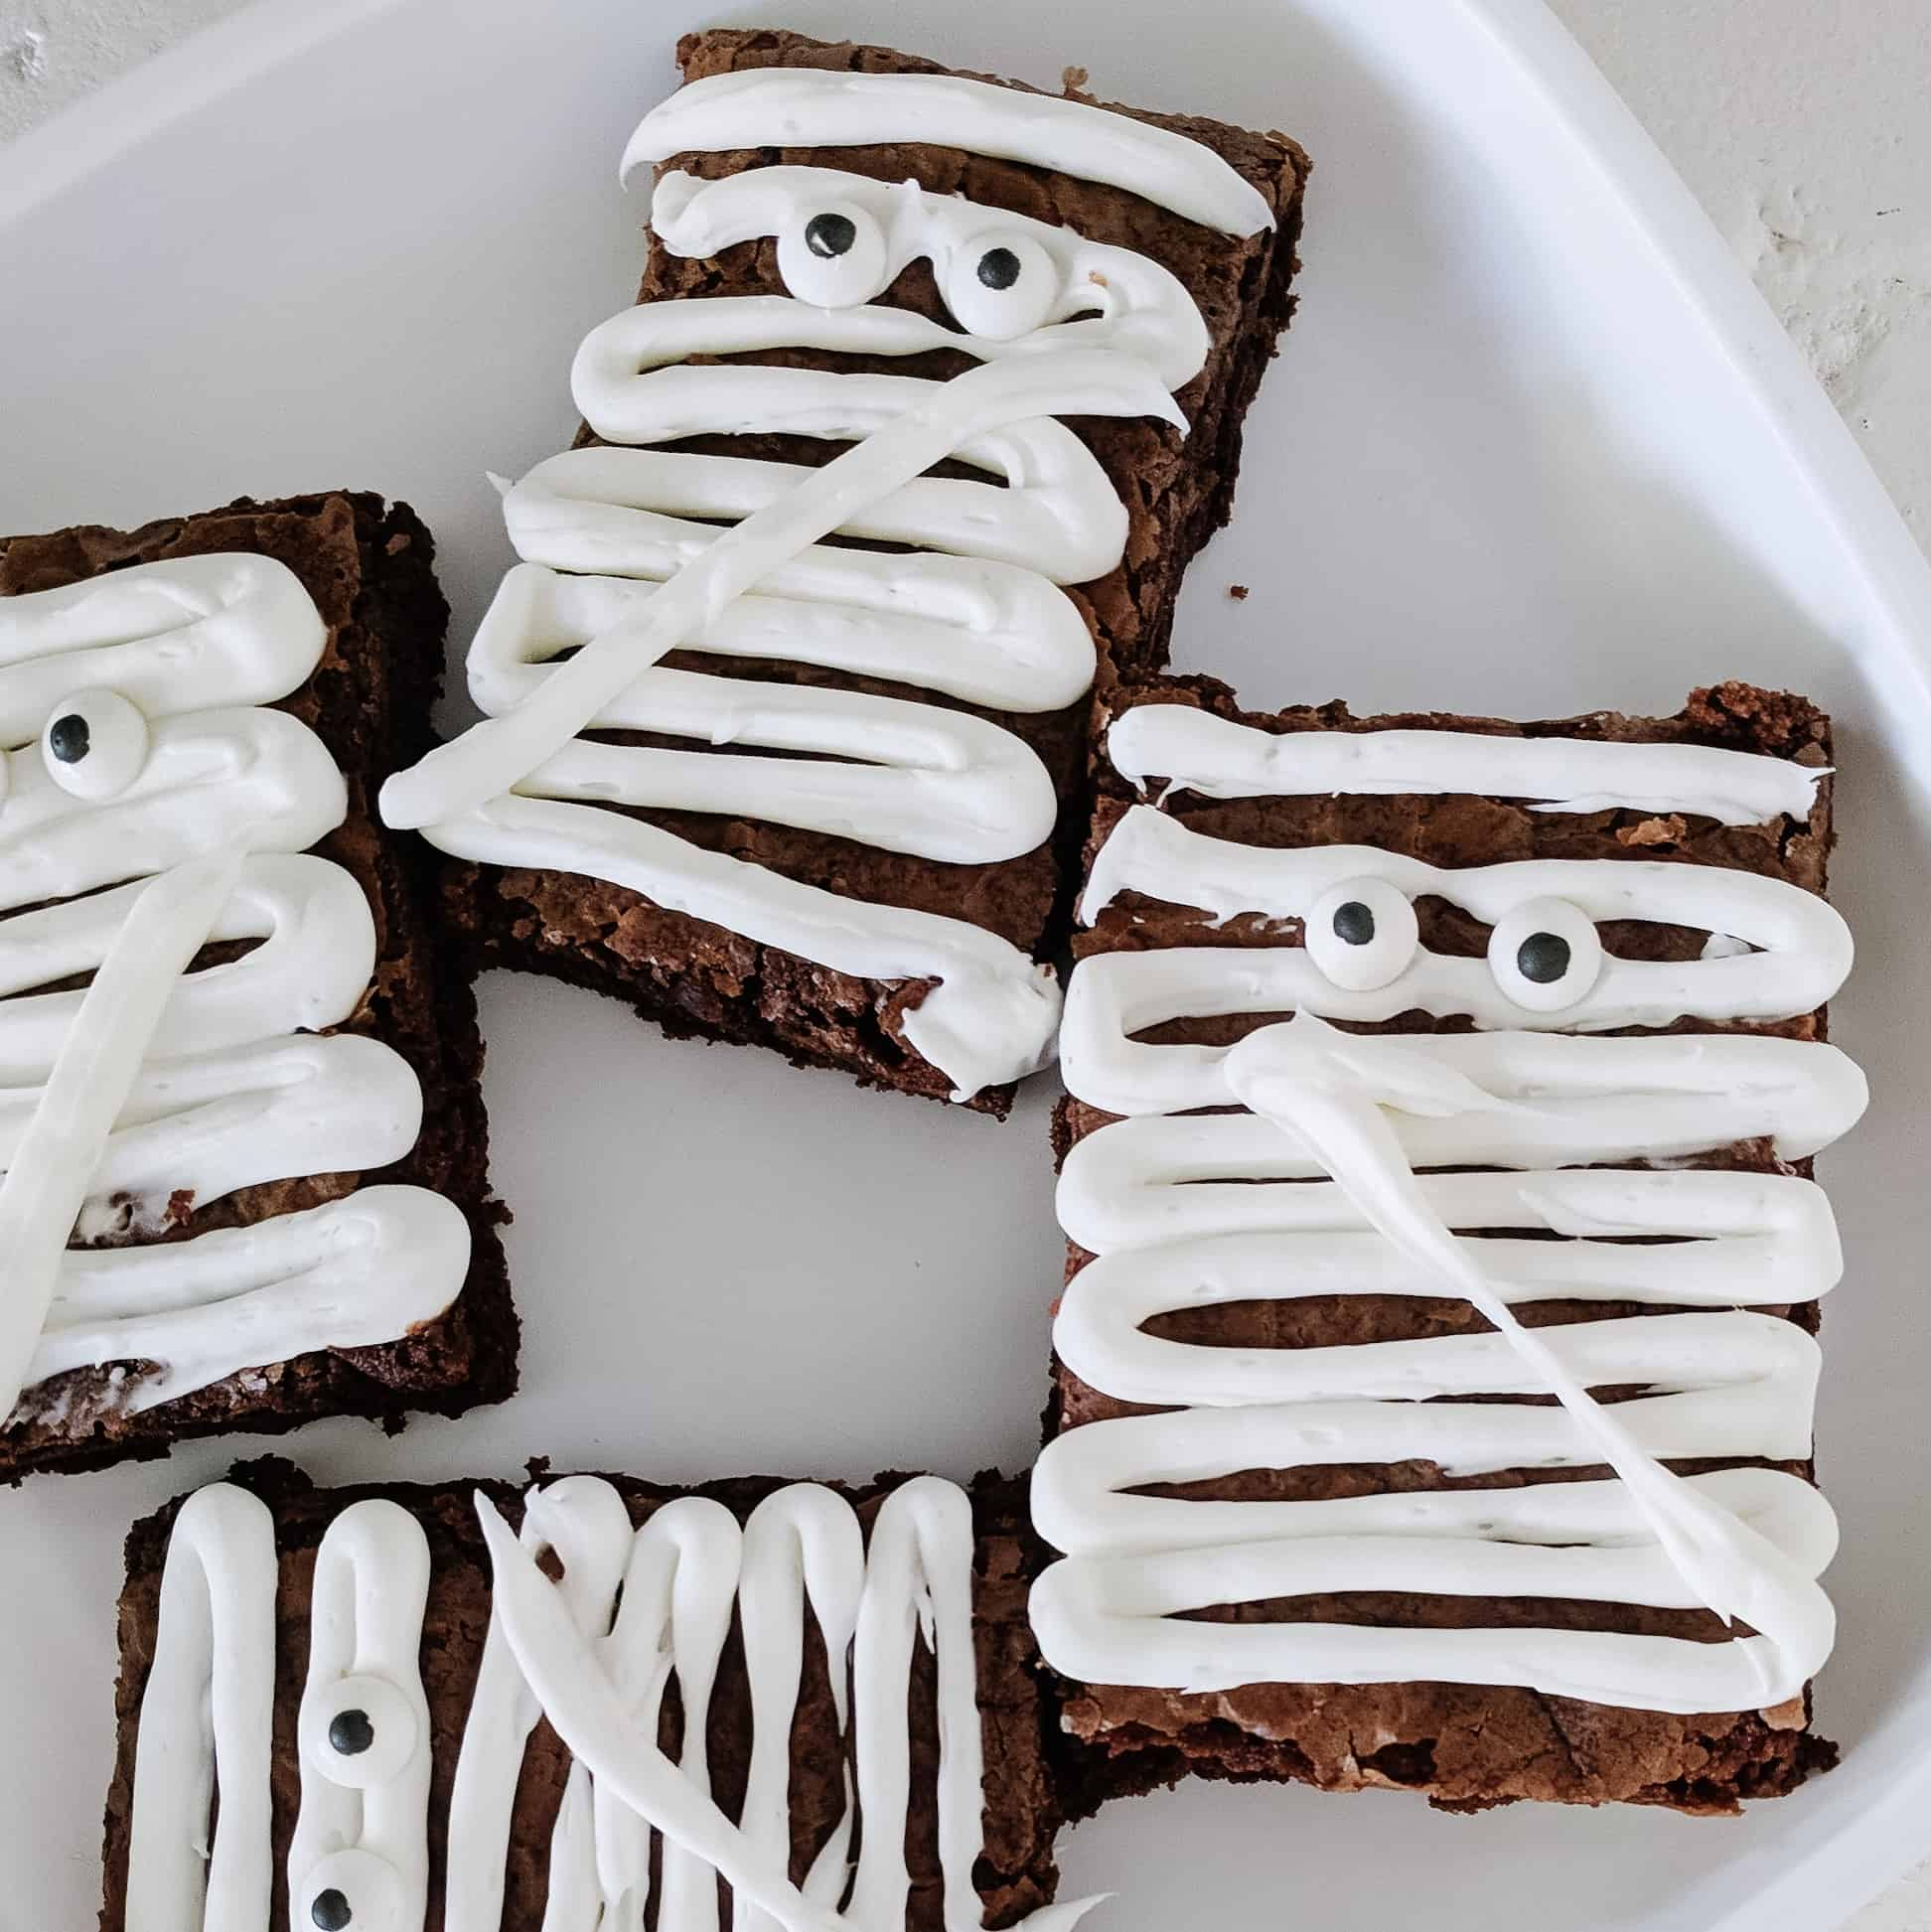 Mummy brownies on white plate